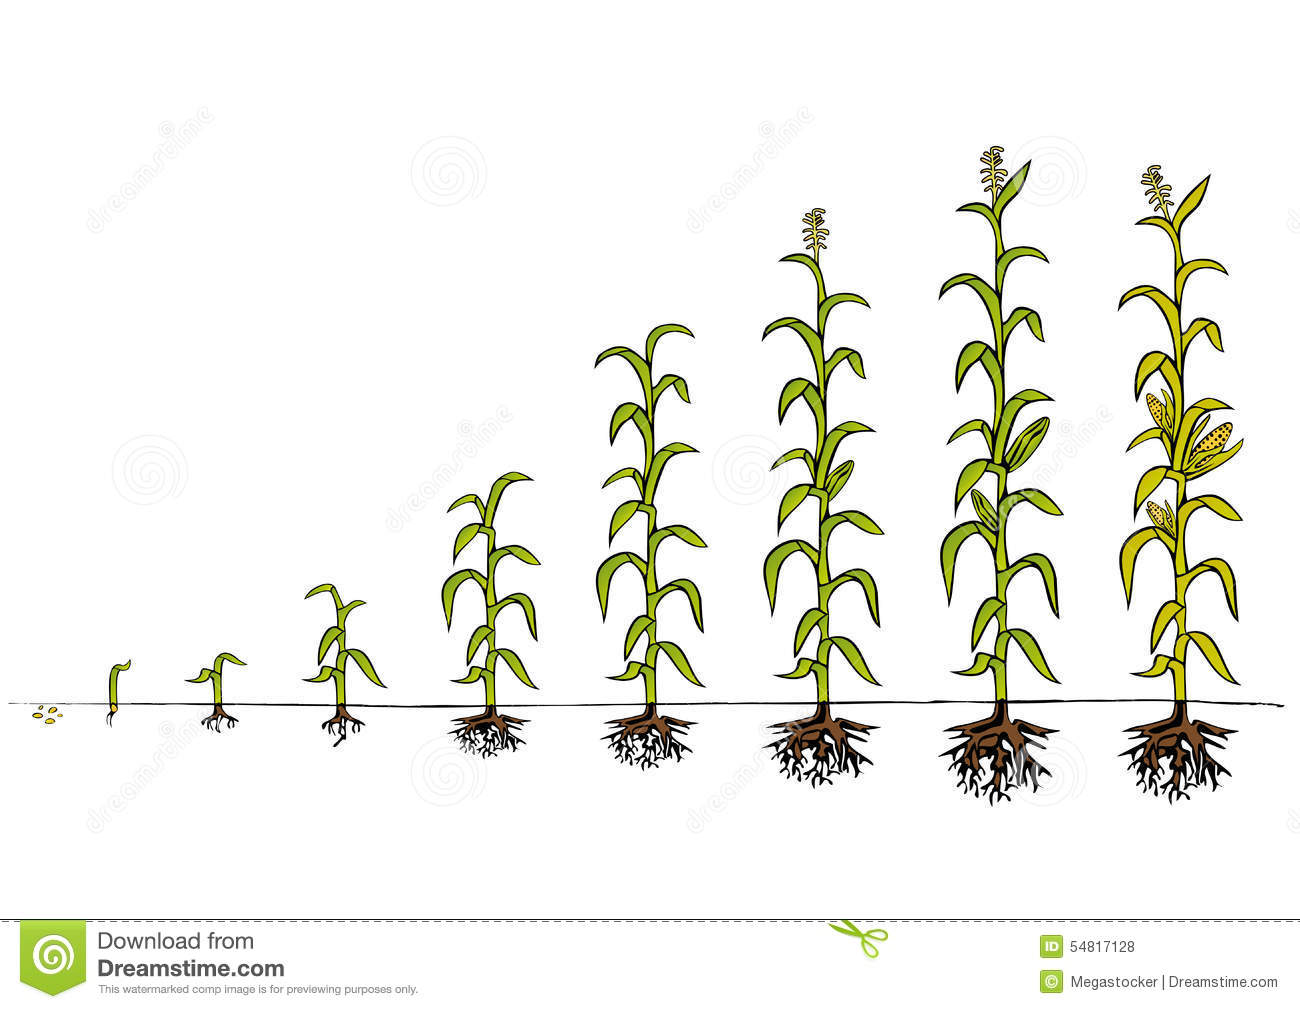 business plan for planting maize Crops looked at being produced were grain corn and alfalfa hay  in this  business plan we will look at growing only alfalfa hay and grain corn on the farm.